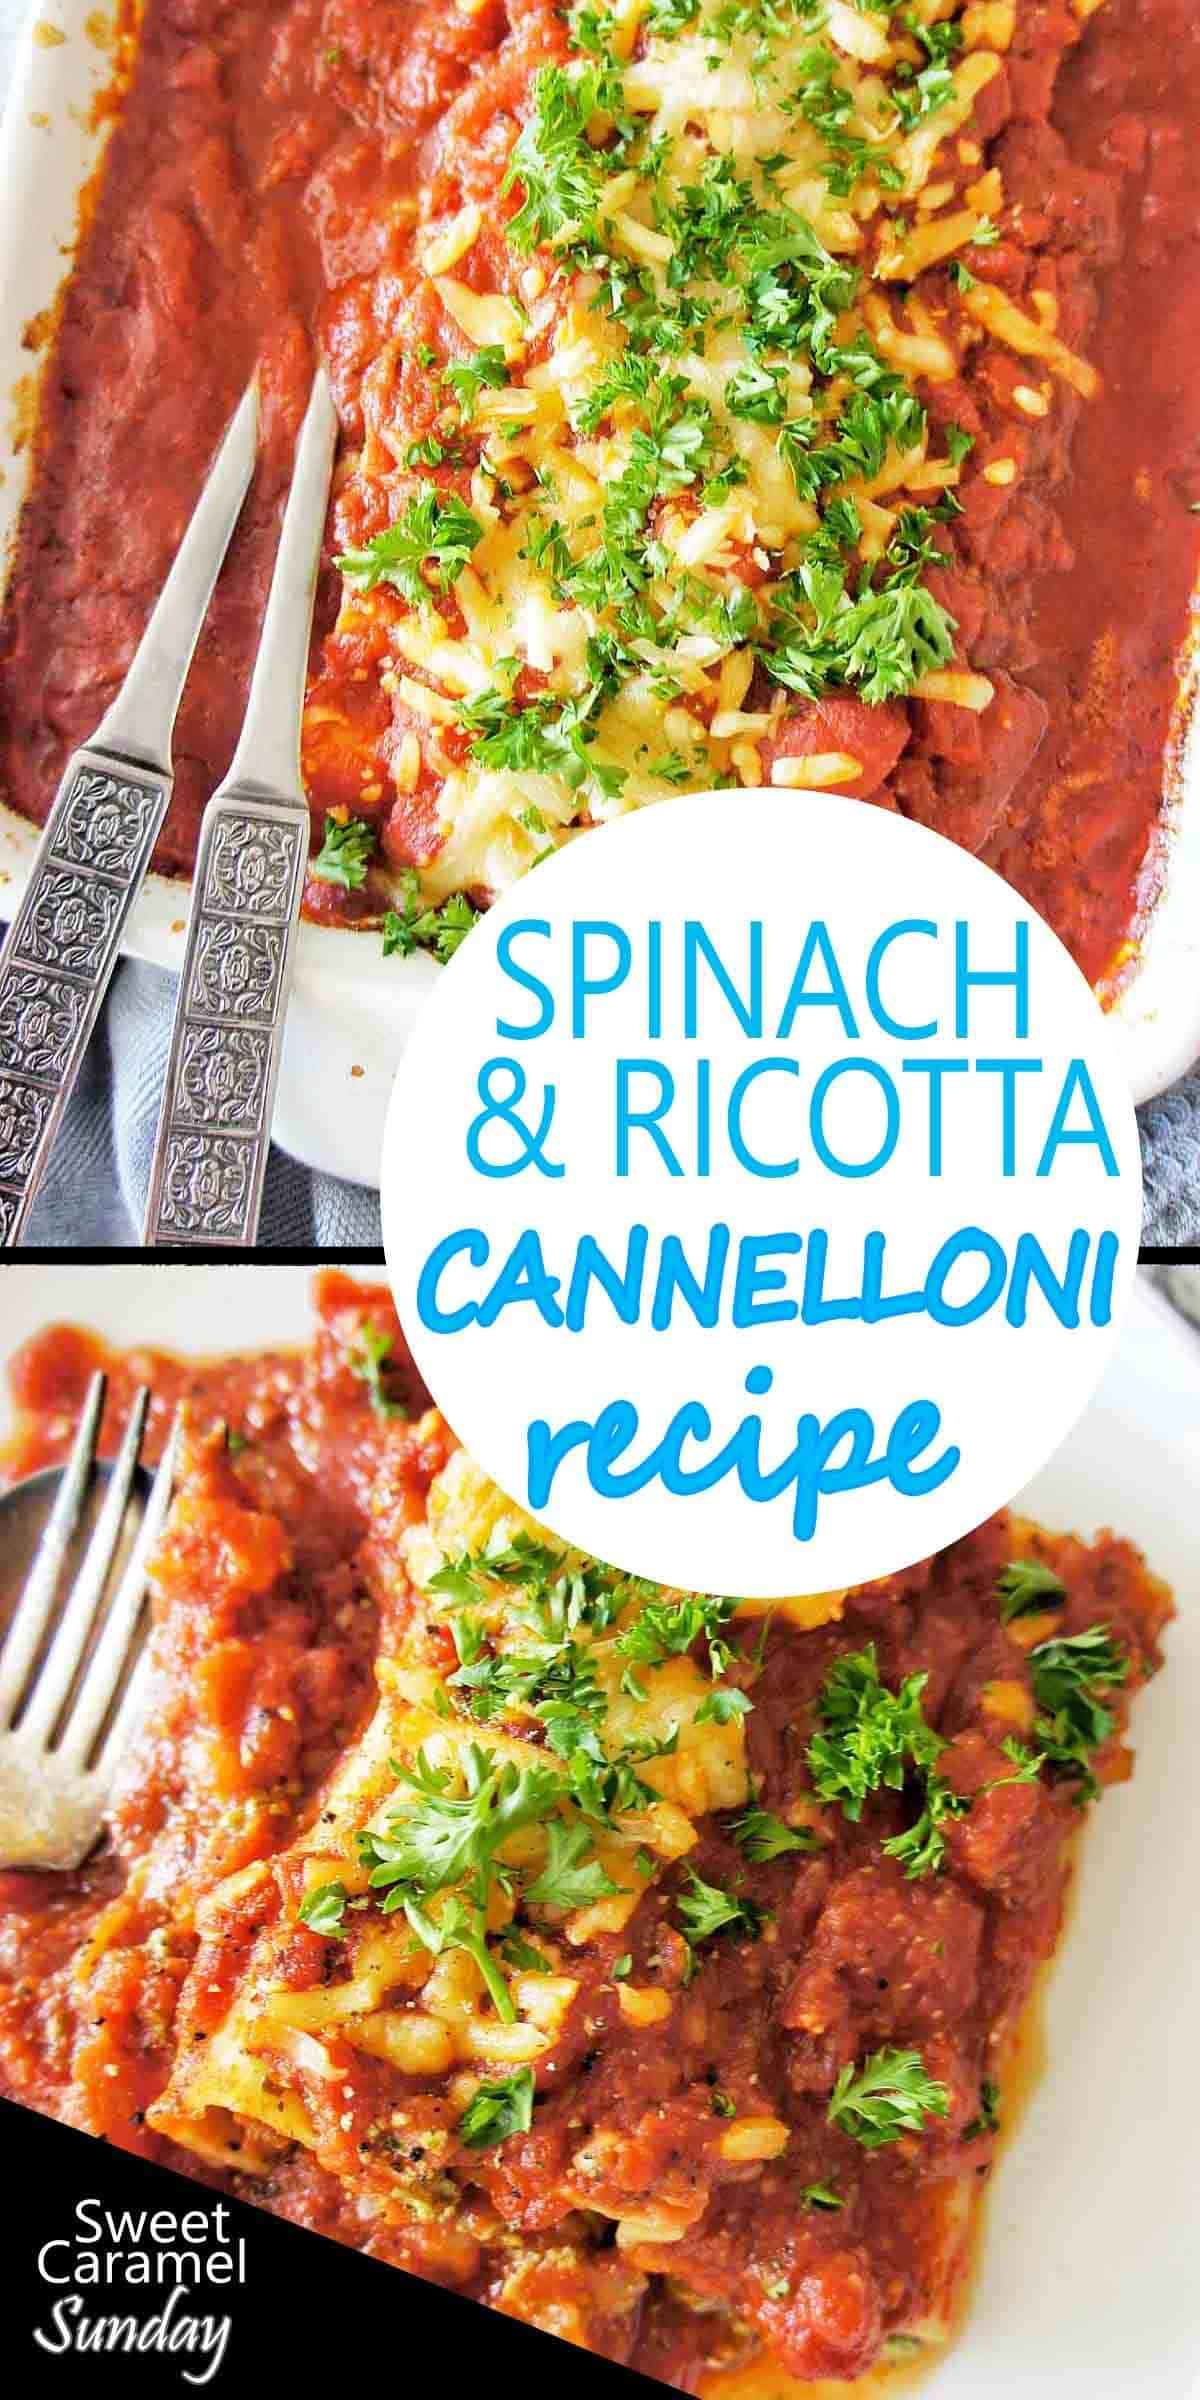 Spinach and Ricotta Cannelloni with text overlay